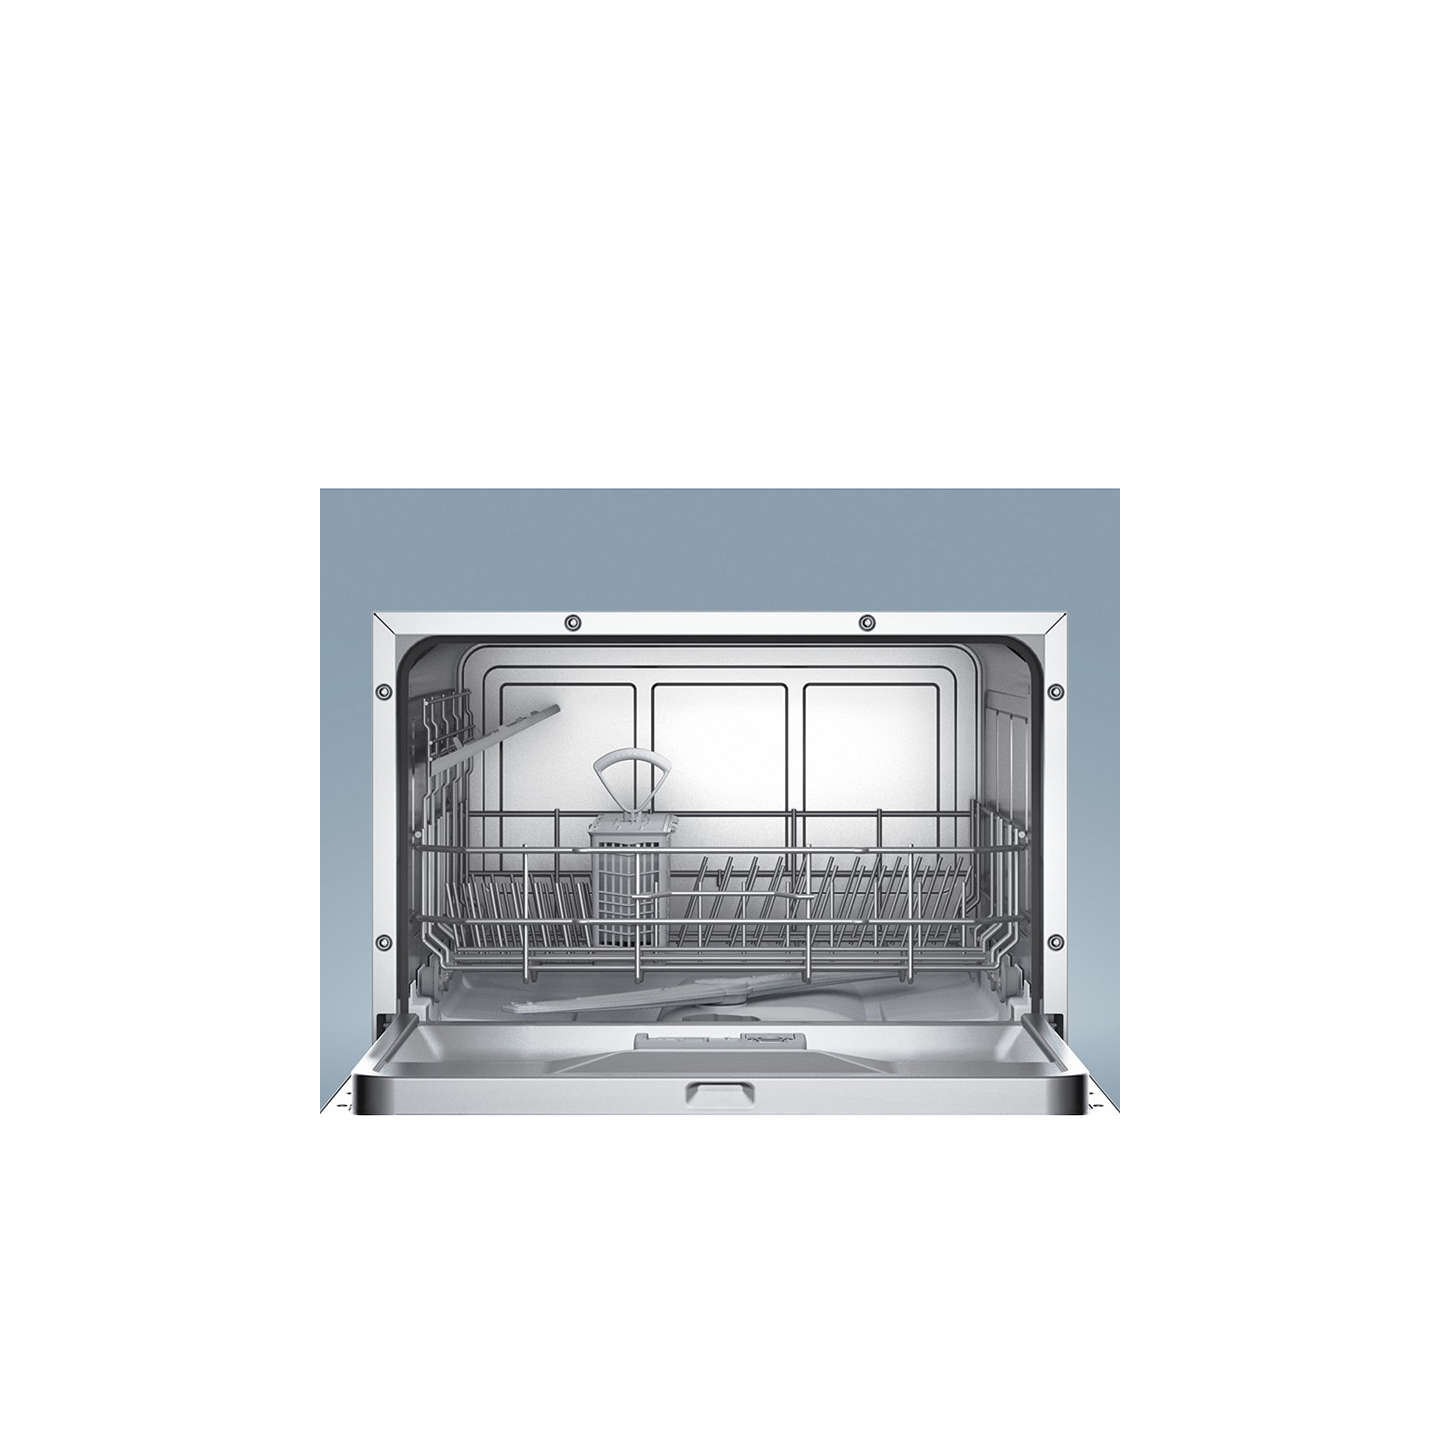 BuyBosch SKS62E22EU Freestanding Dishwasher, White Online at johnlewis.com